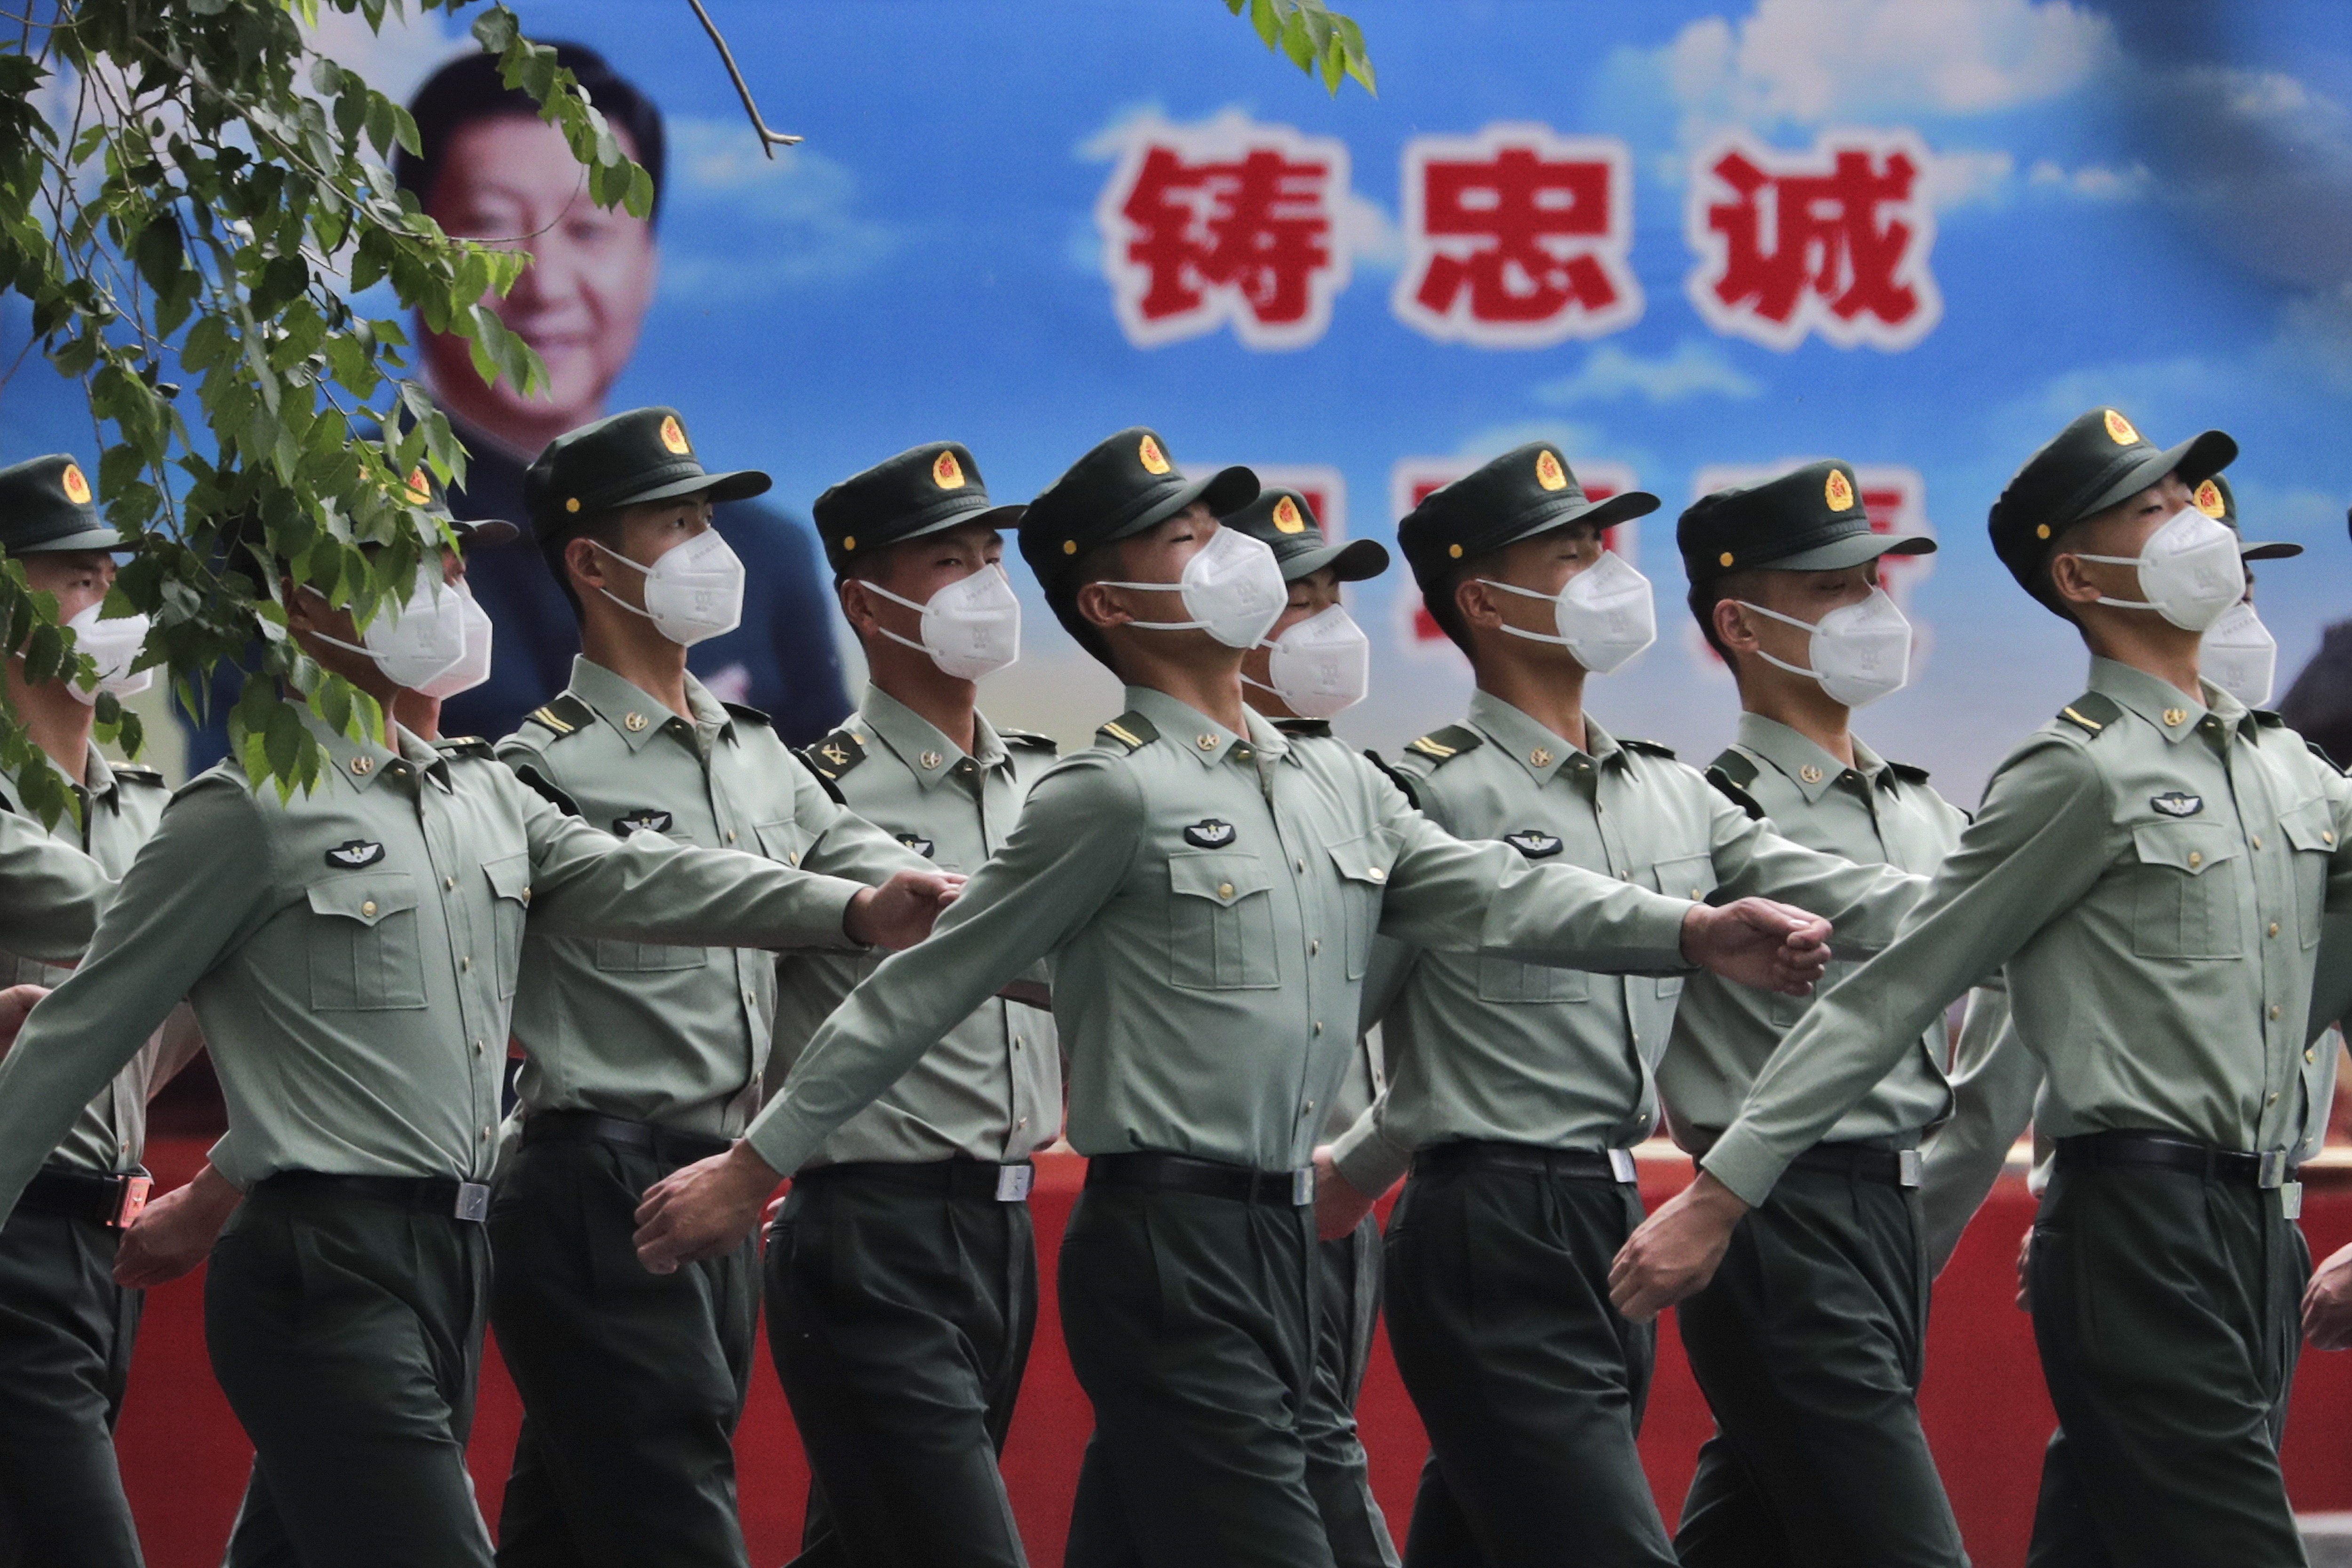 Chinese People's Liberation Army (PLA) soldiers wearing face masks to protect against the spread of the new coronavirus march past a banner depicting Chinese President Xi Jinping at their living squatter inside the Tiananmen Gate in Beijing during a plenary session of China's National People's Congress (NPC) at the Great Hall of the People in Beijing, Monday, May 25, 2020. (AP Photo/Andy Wong)